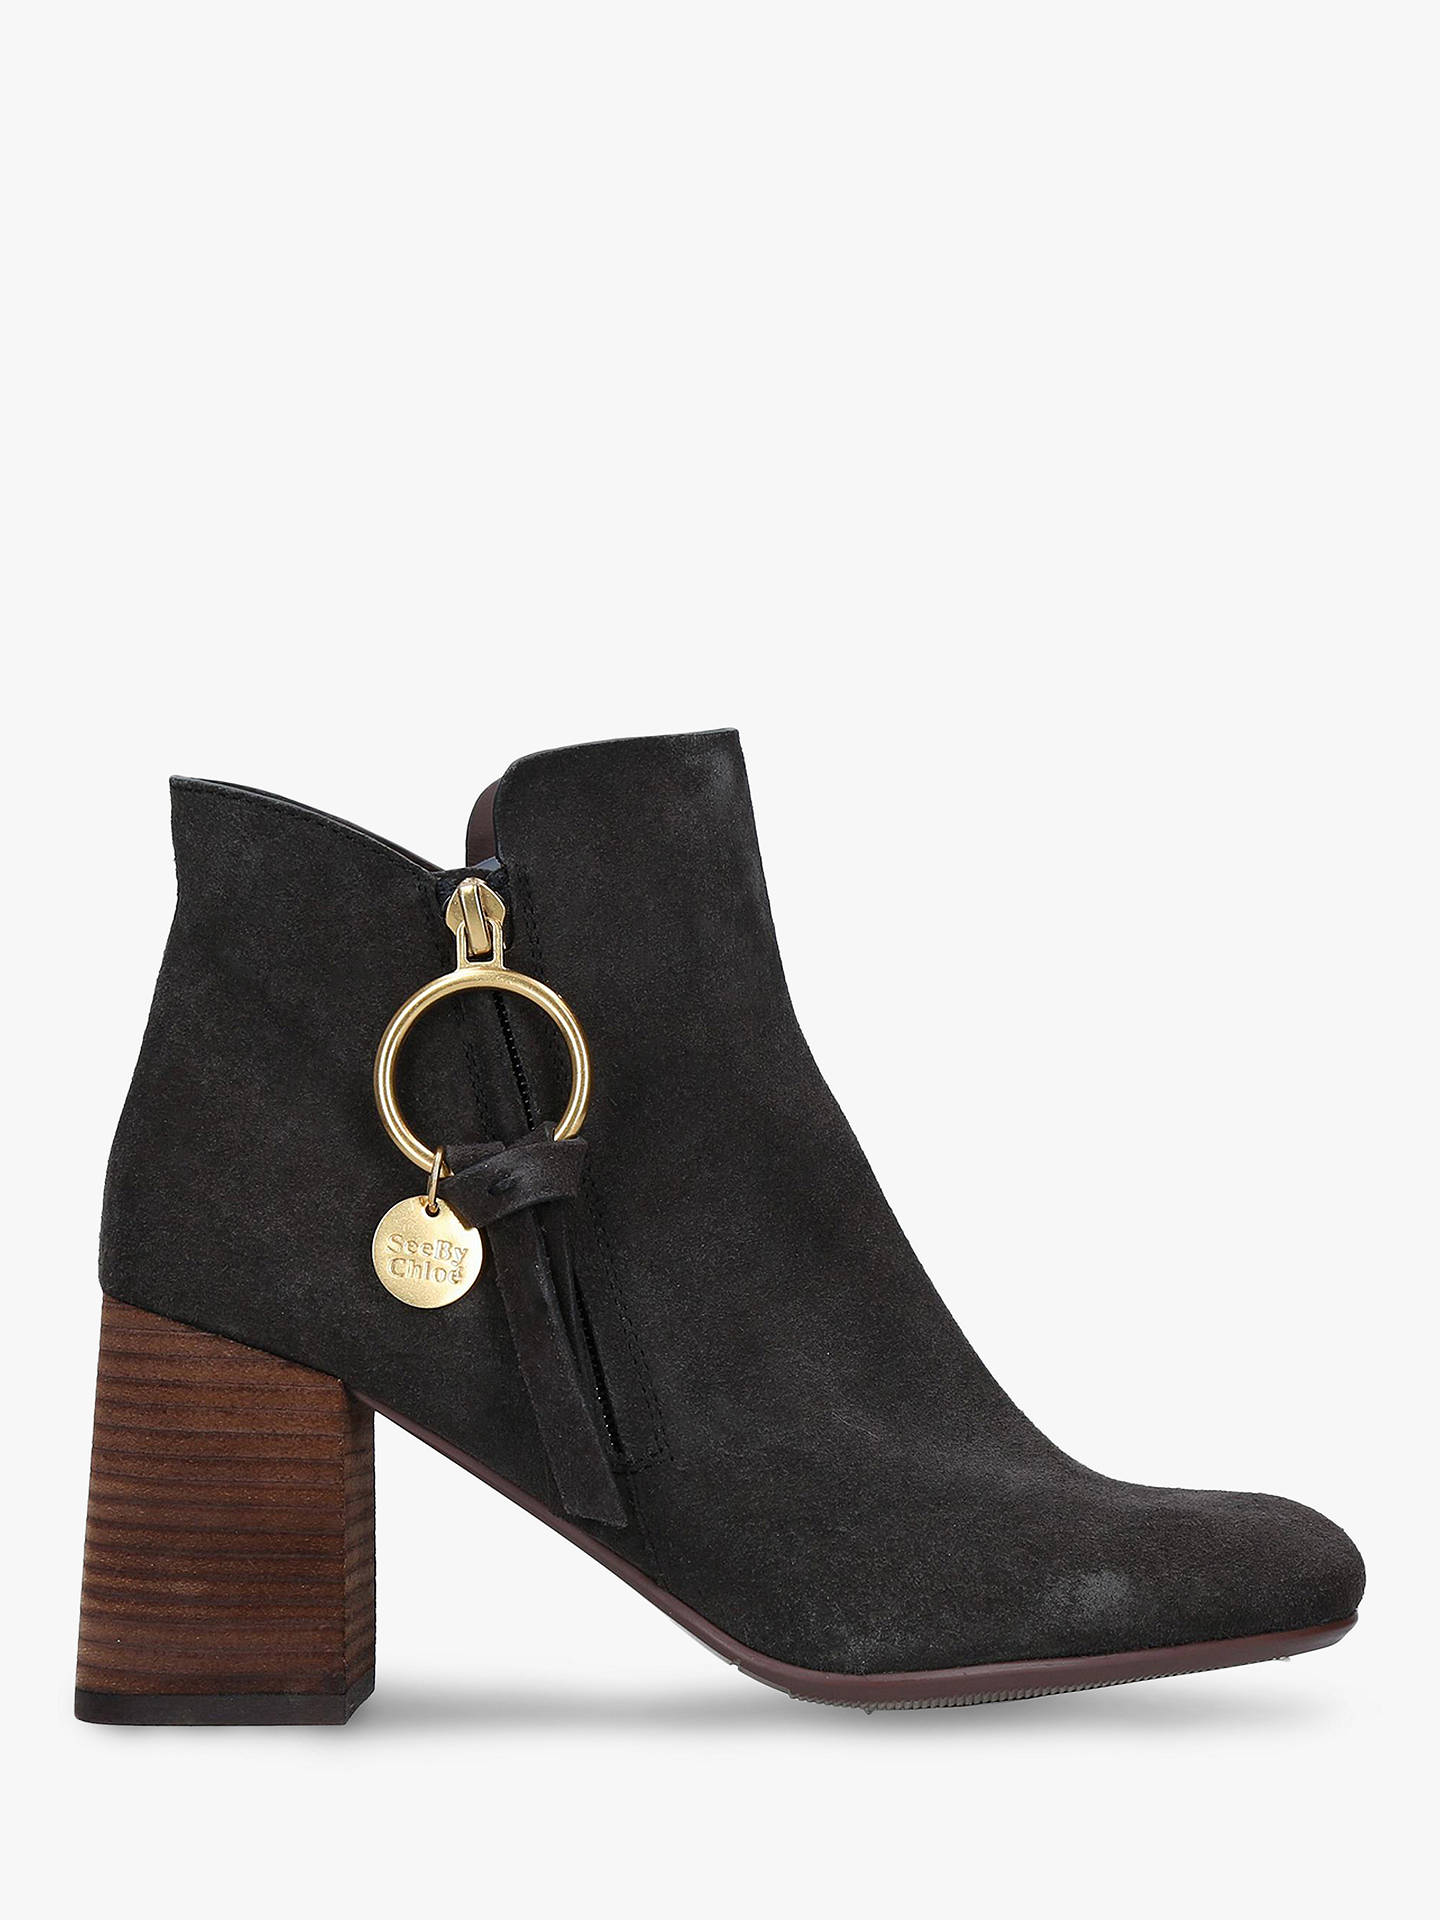 f67964768f4 See By Chloé Zip Charm Ankle Boots, Black Leather at John Lewis ...